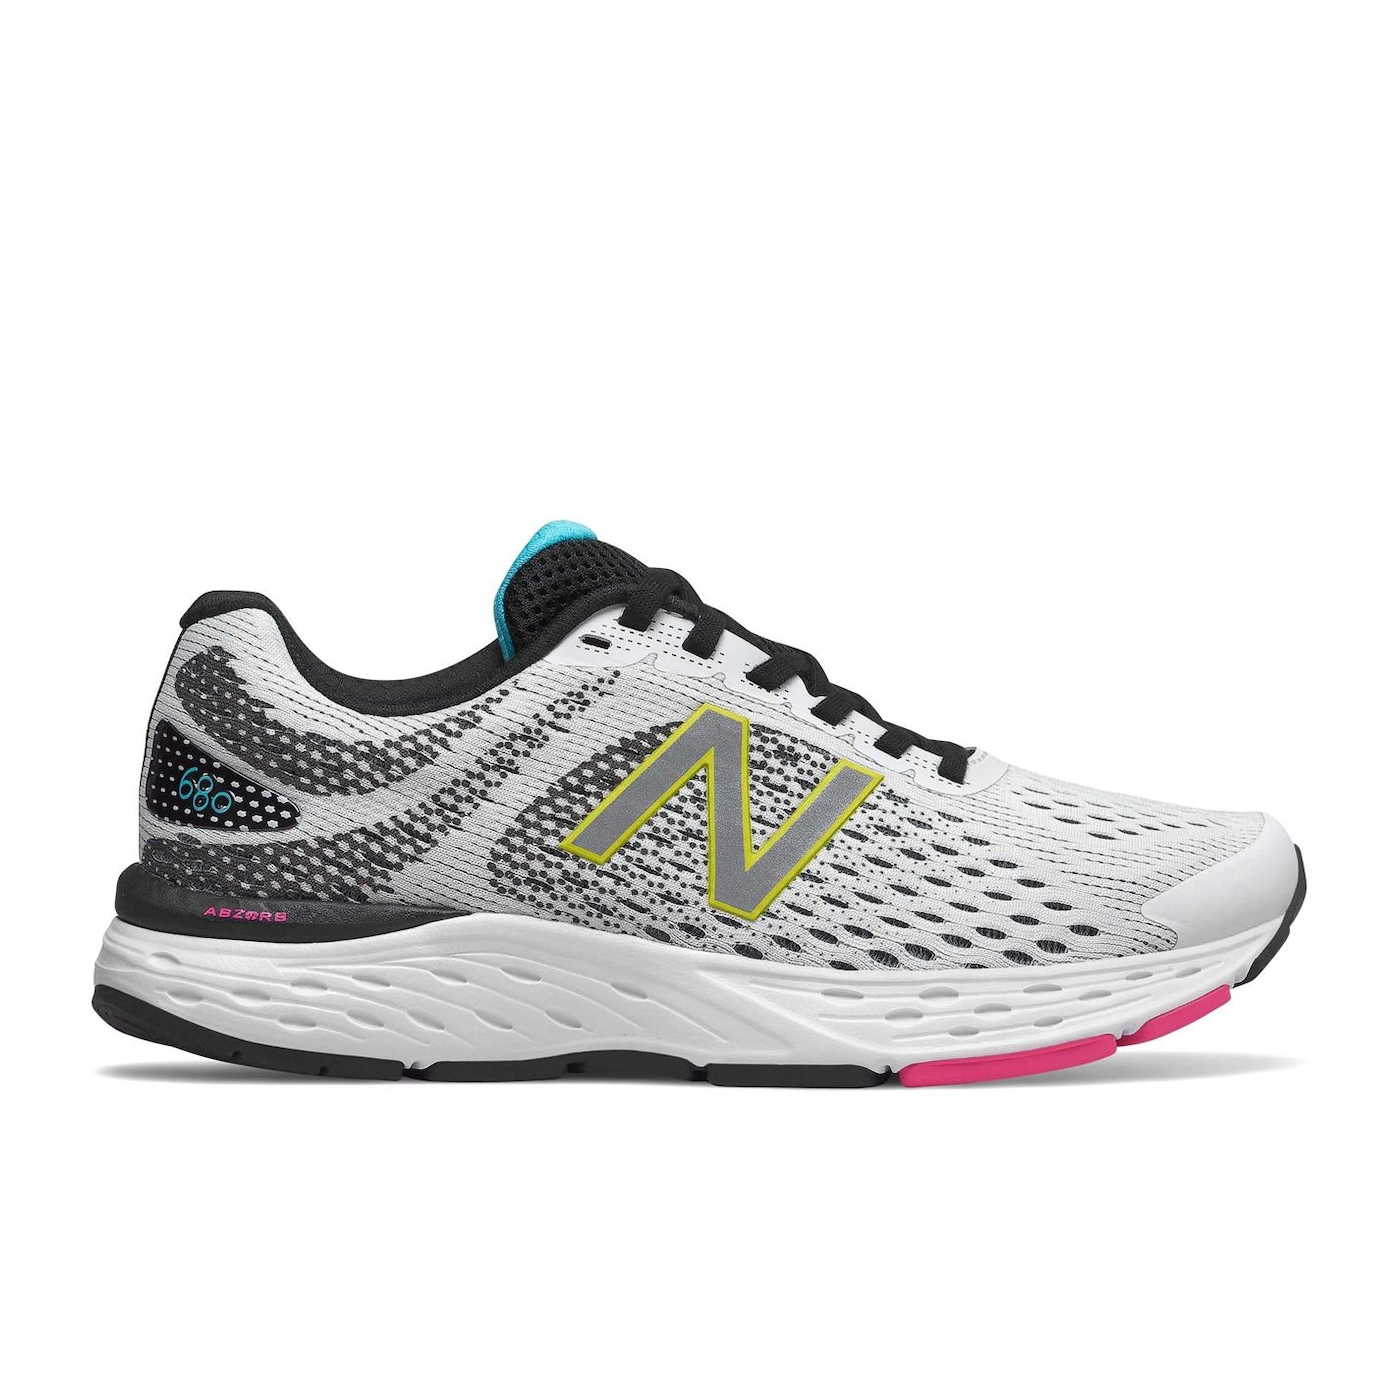 New Balance W460v2 Running Shoes Ladies Road Laces Fastened